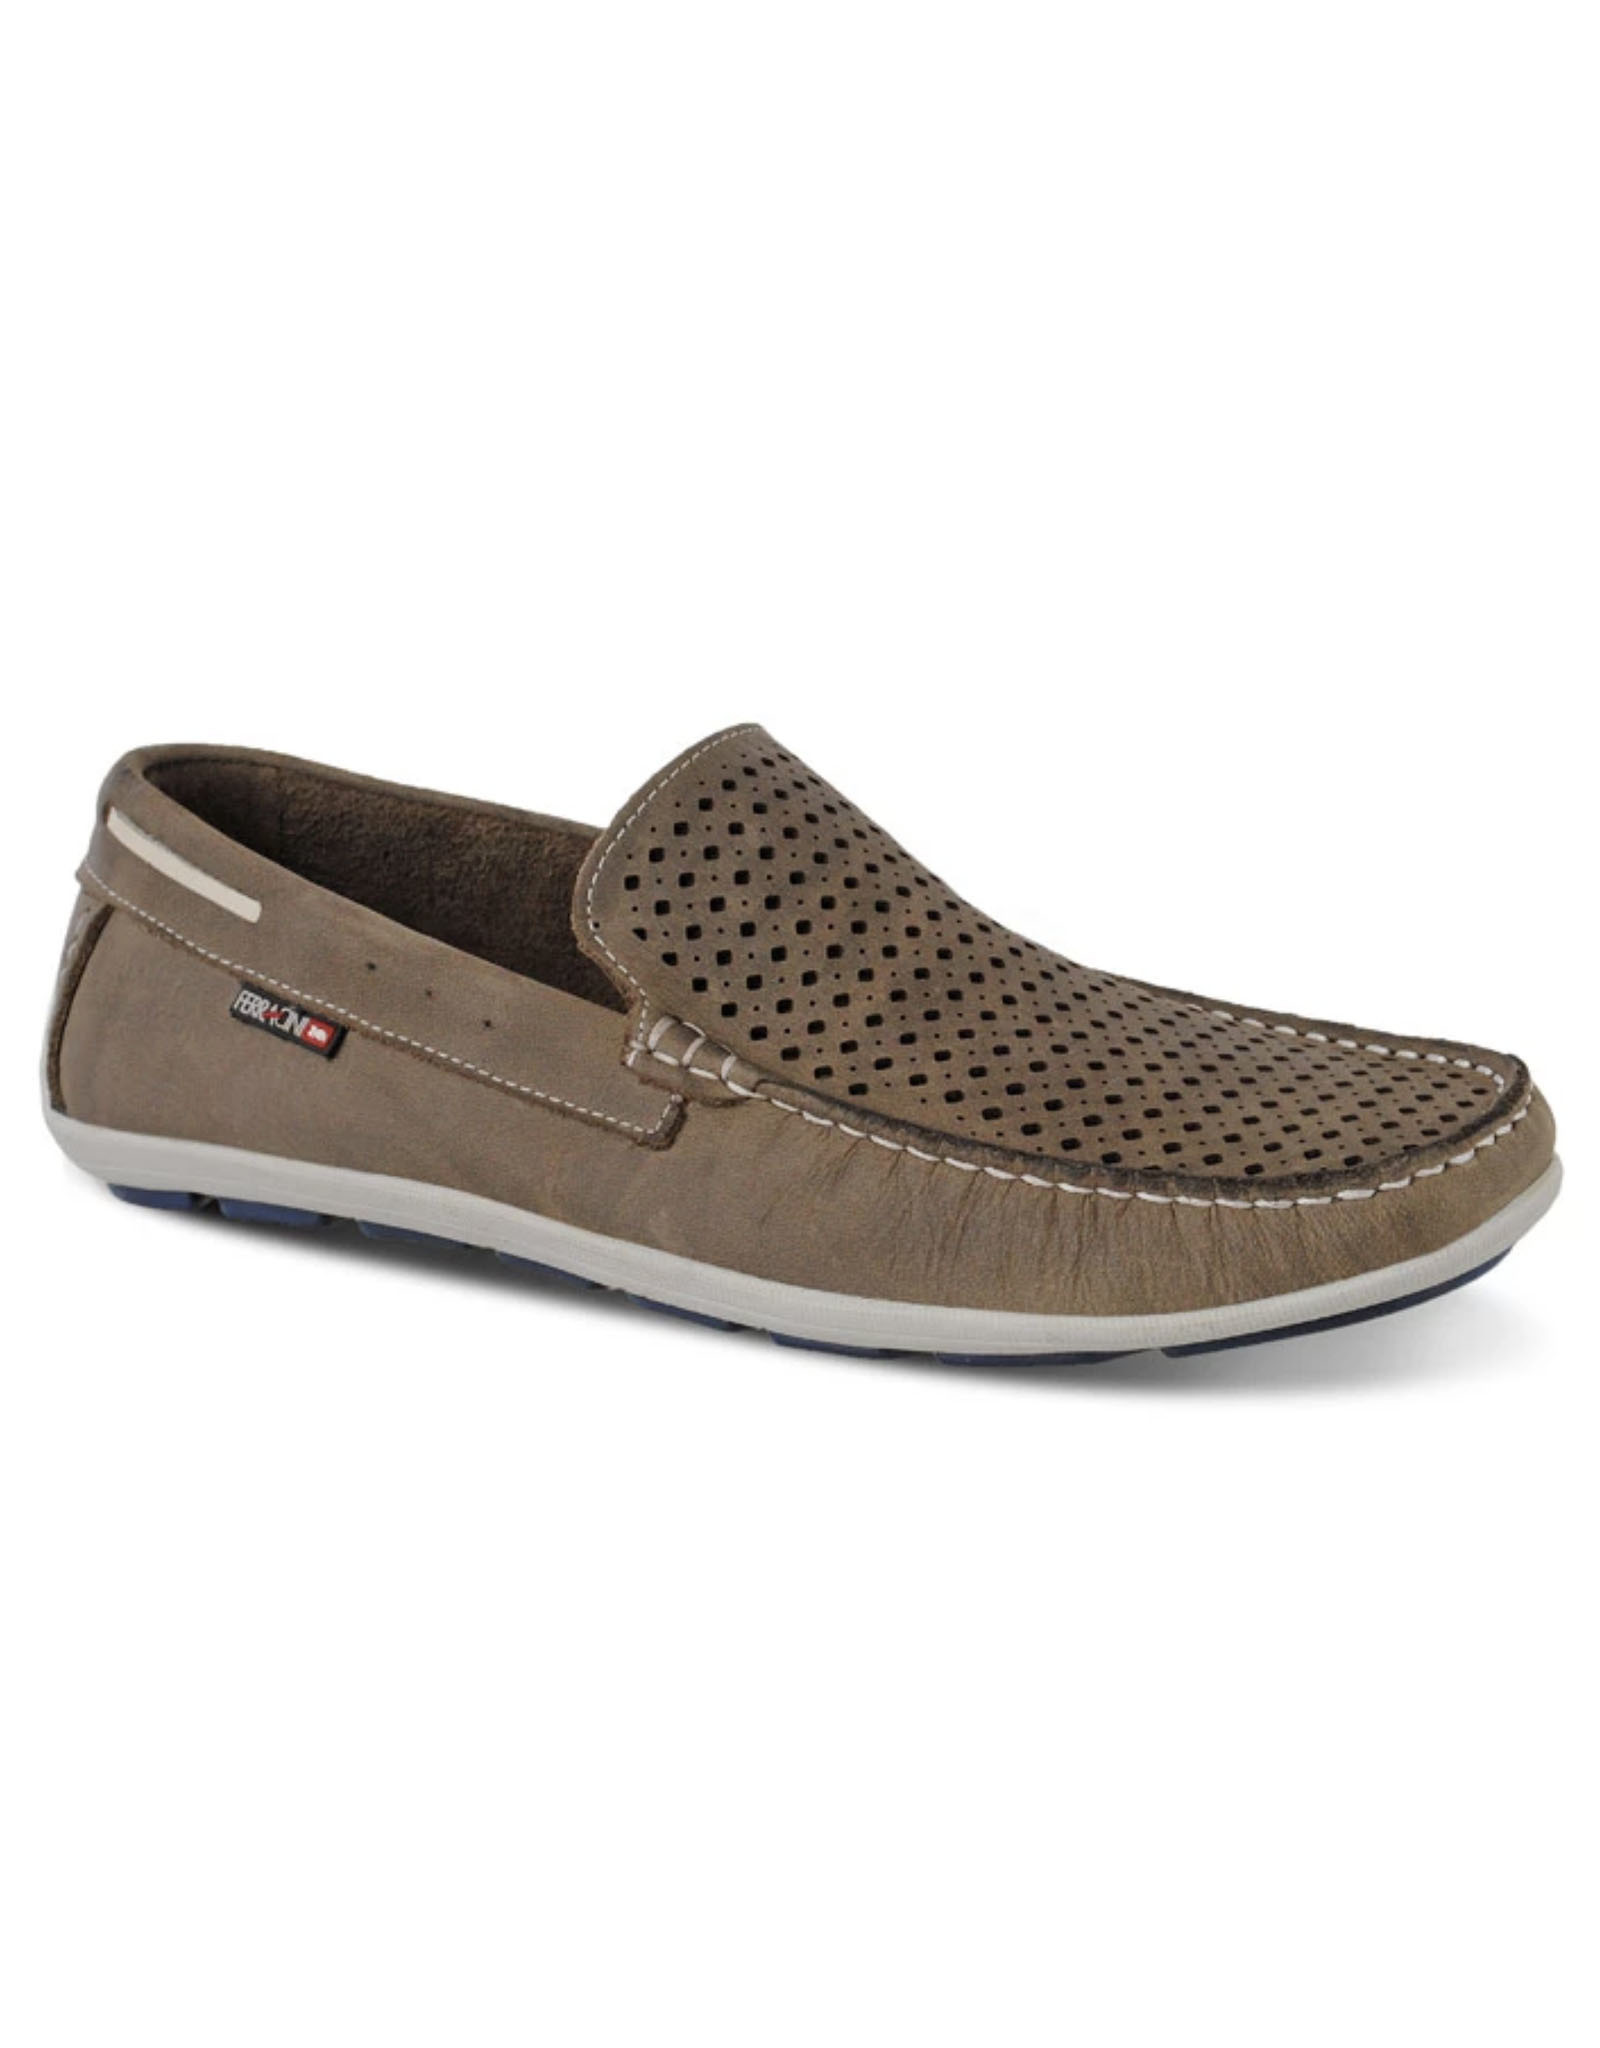 Ferracini Harley Slip on Casual | Chocolate